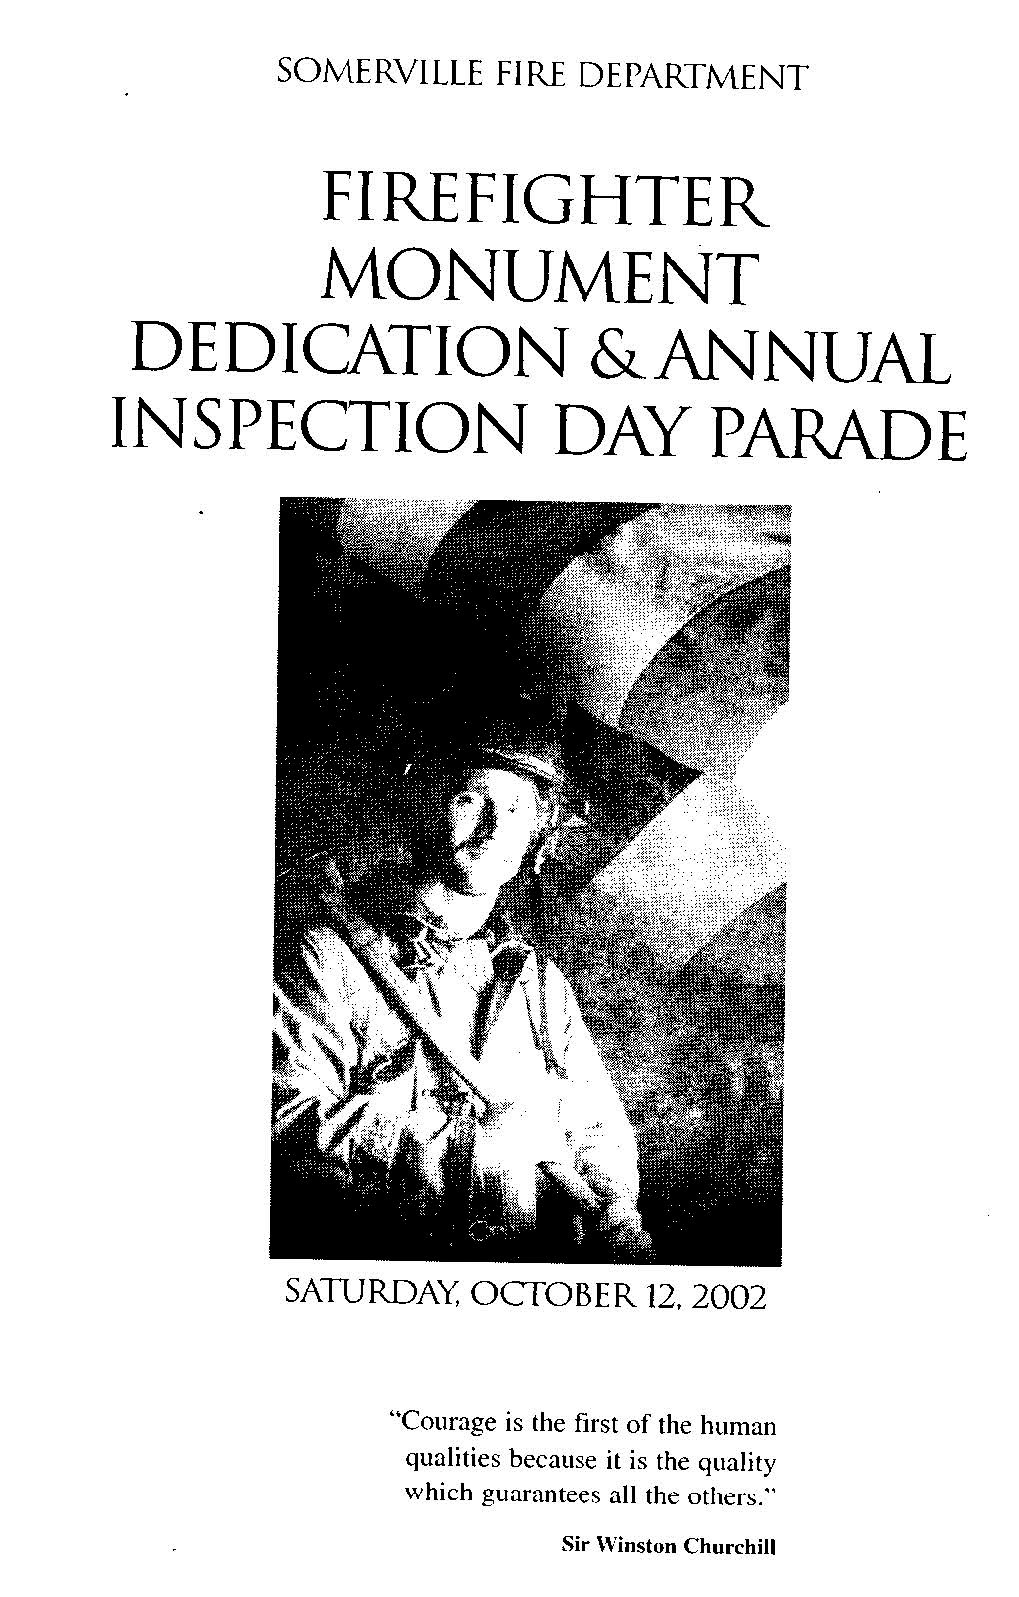 2002 Monument Dedication & Inspection day parade.pamhlet_Page_1_Image_0001.jpg